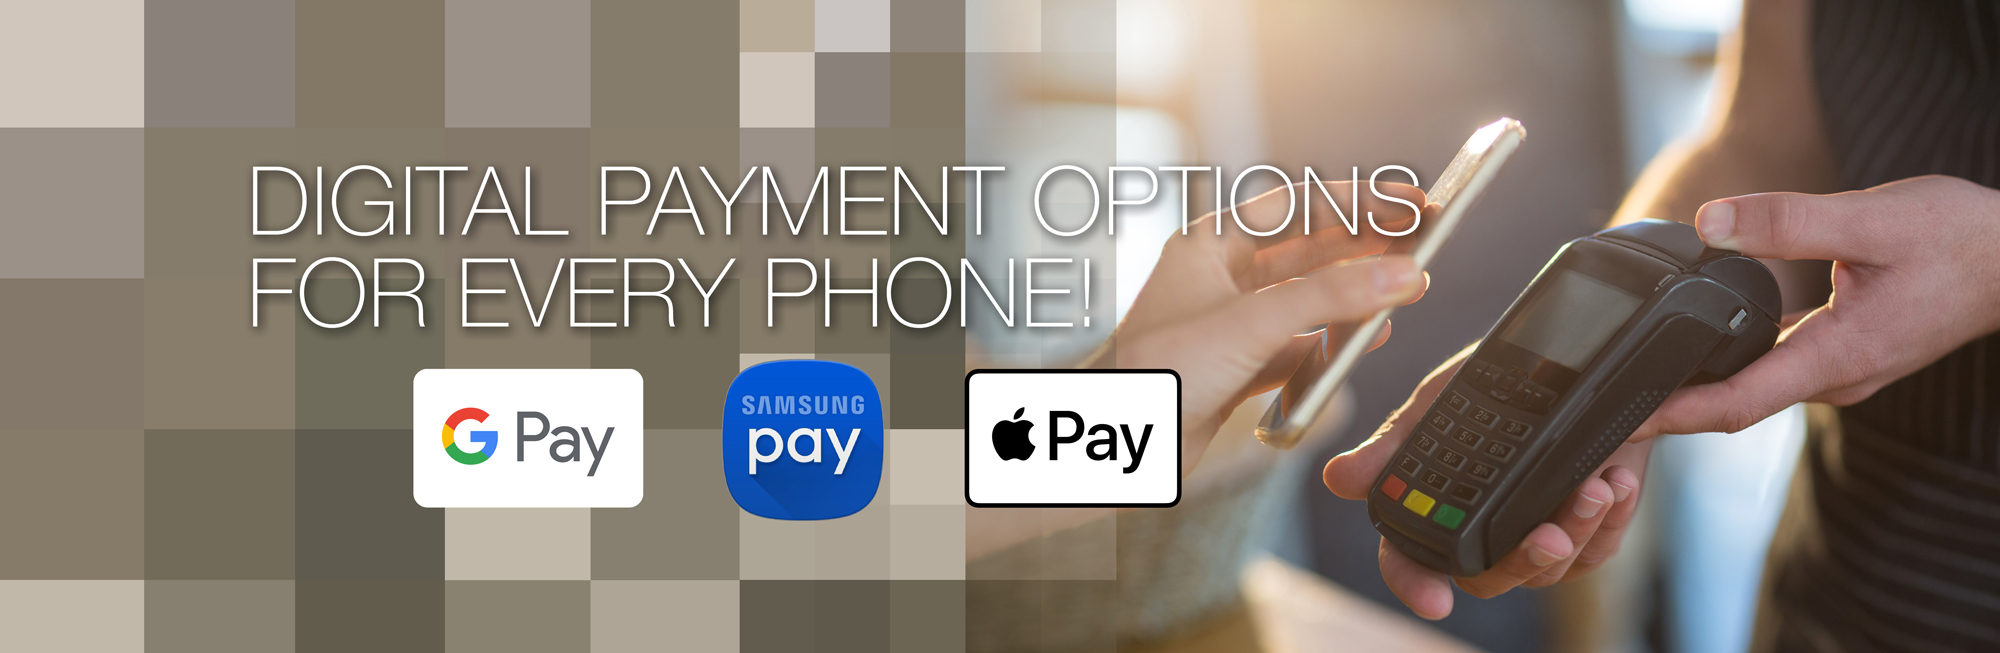 Encrypt your West Community Credit Cards and Debit Cards with the digital wallet of your choice. Samsung Pay, Google Pay or Apple Pay substitute your plastic card at millions of places – online and in stores. Click to learn more.